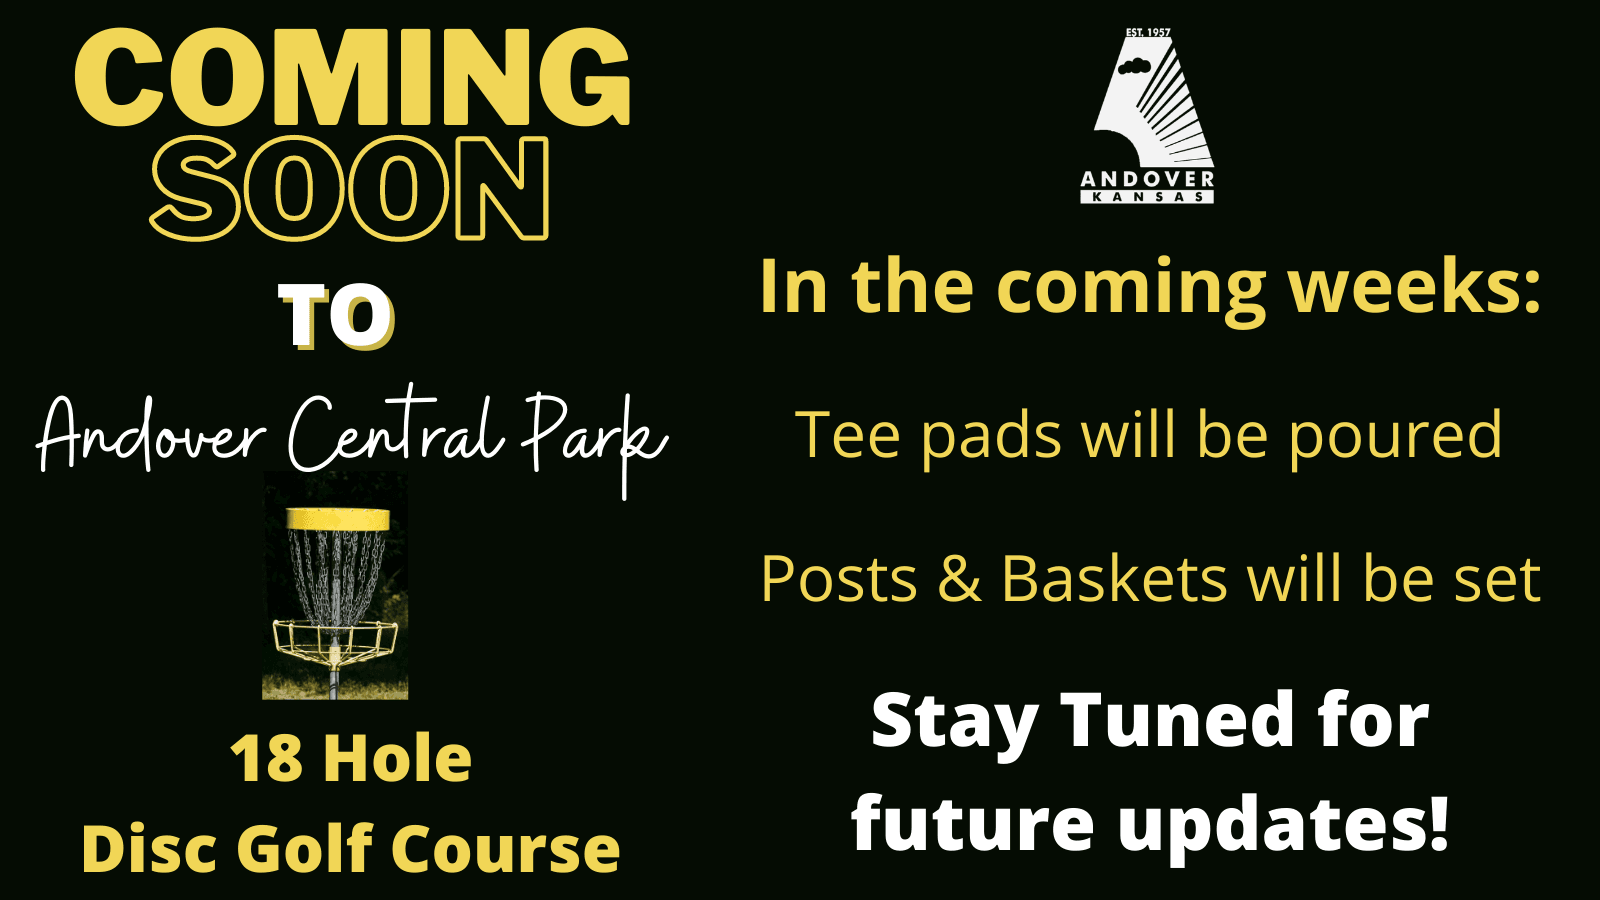 Disc Golf components being installed in the coming weeks at Central Park